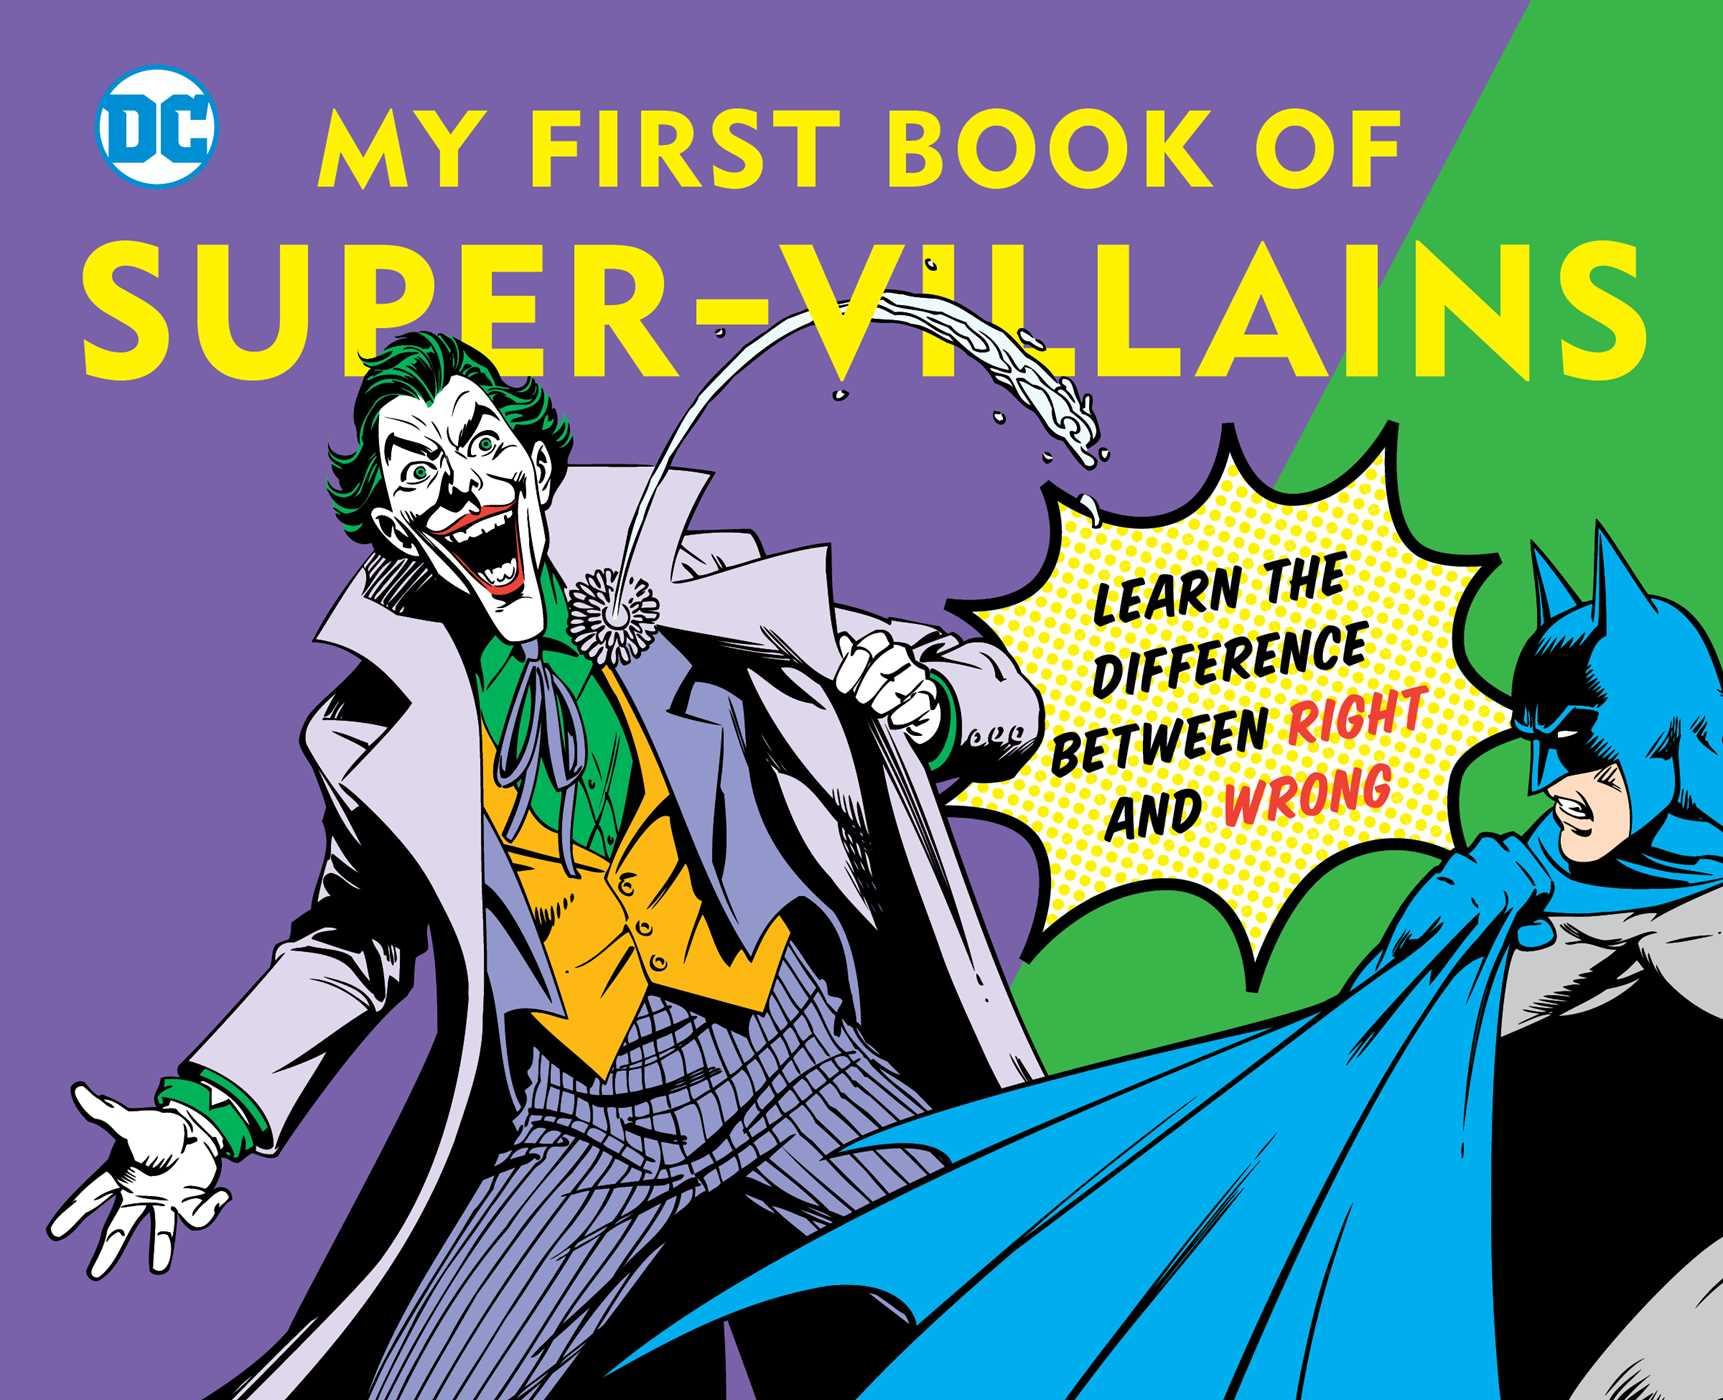 Dc super heroes my first book of super villains 9781935703181 hr